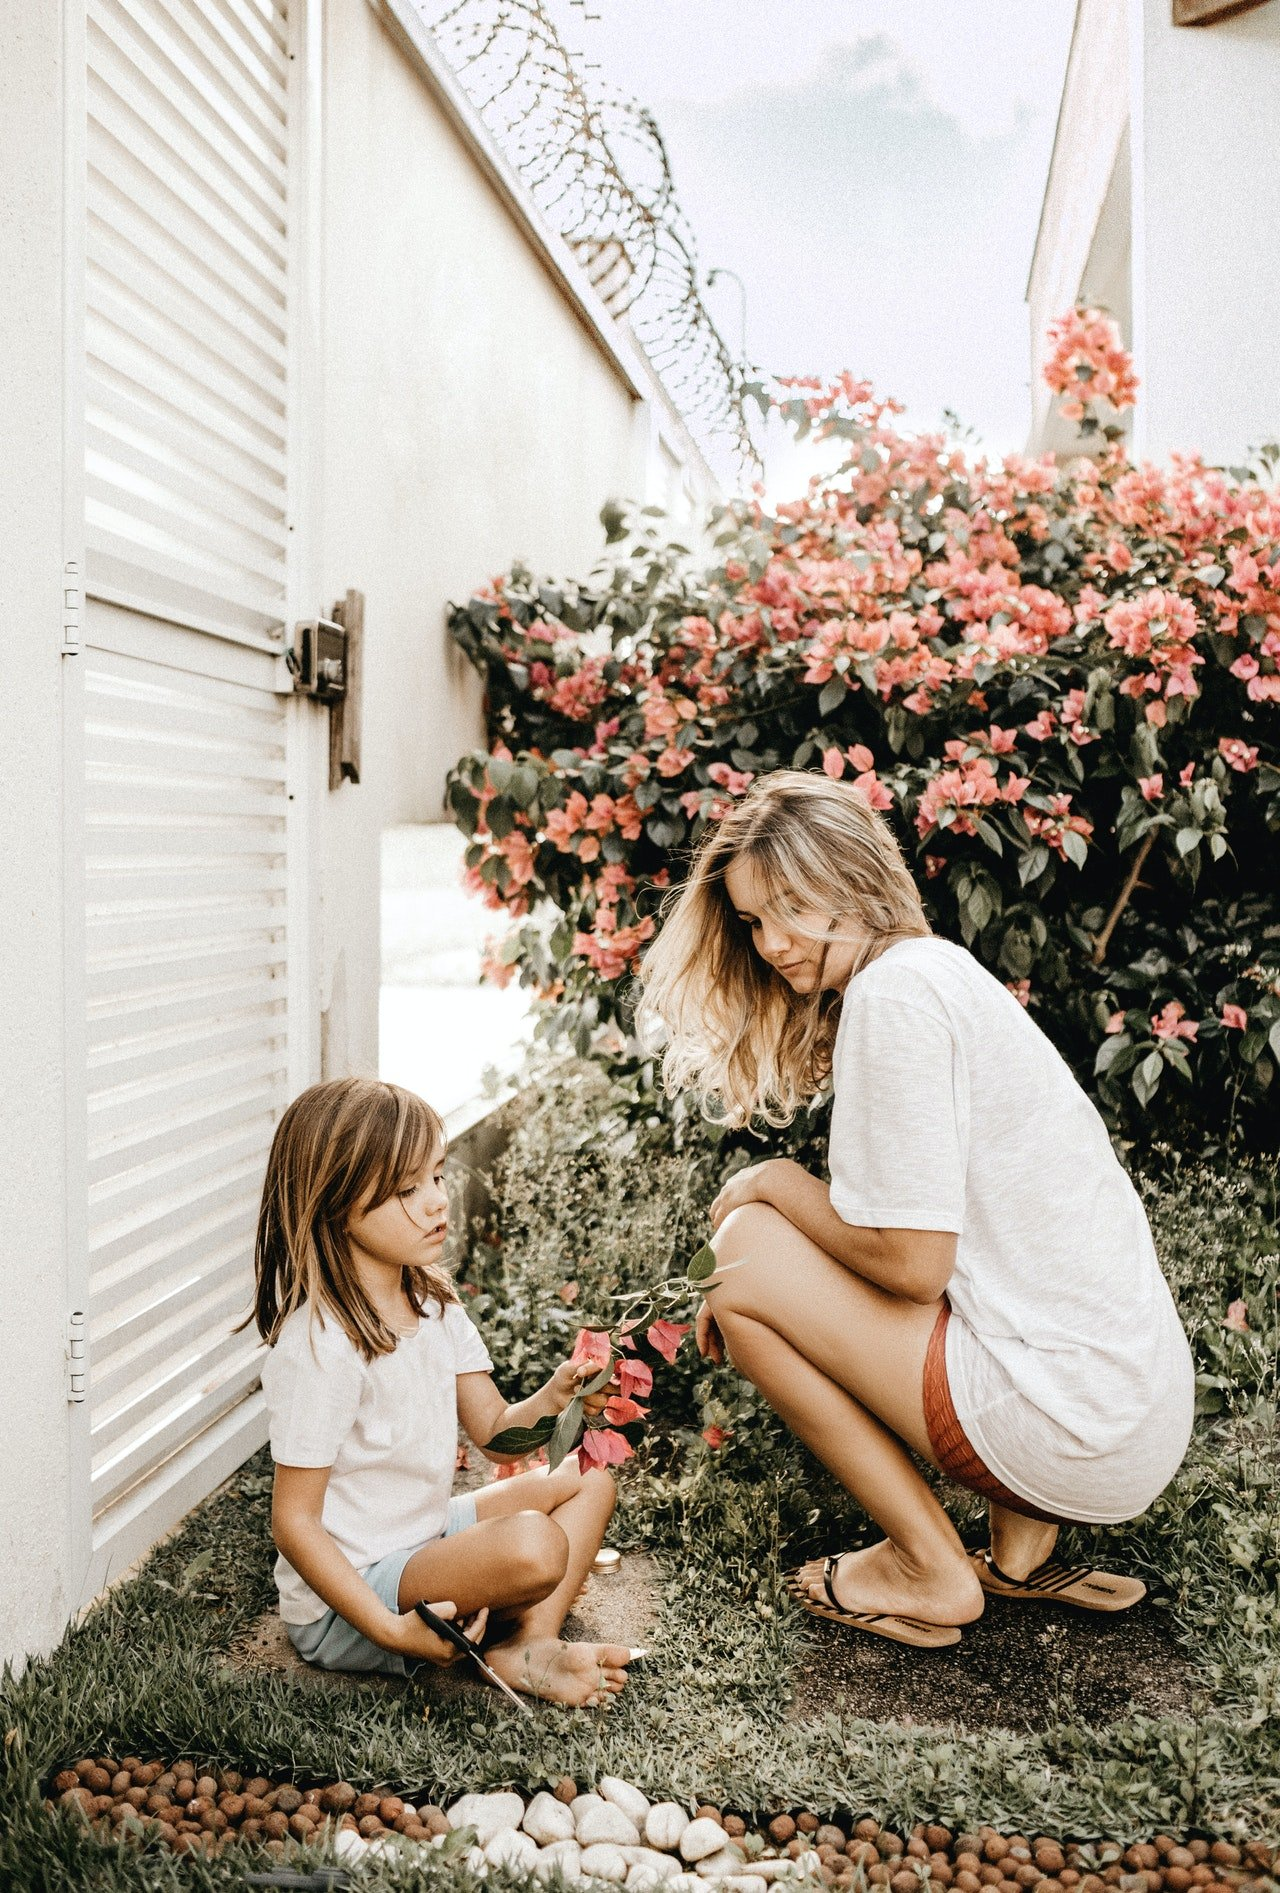 Woman and her daughter spending time together | Photo: Pexels